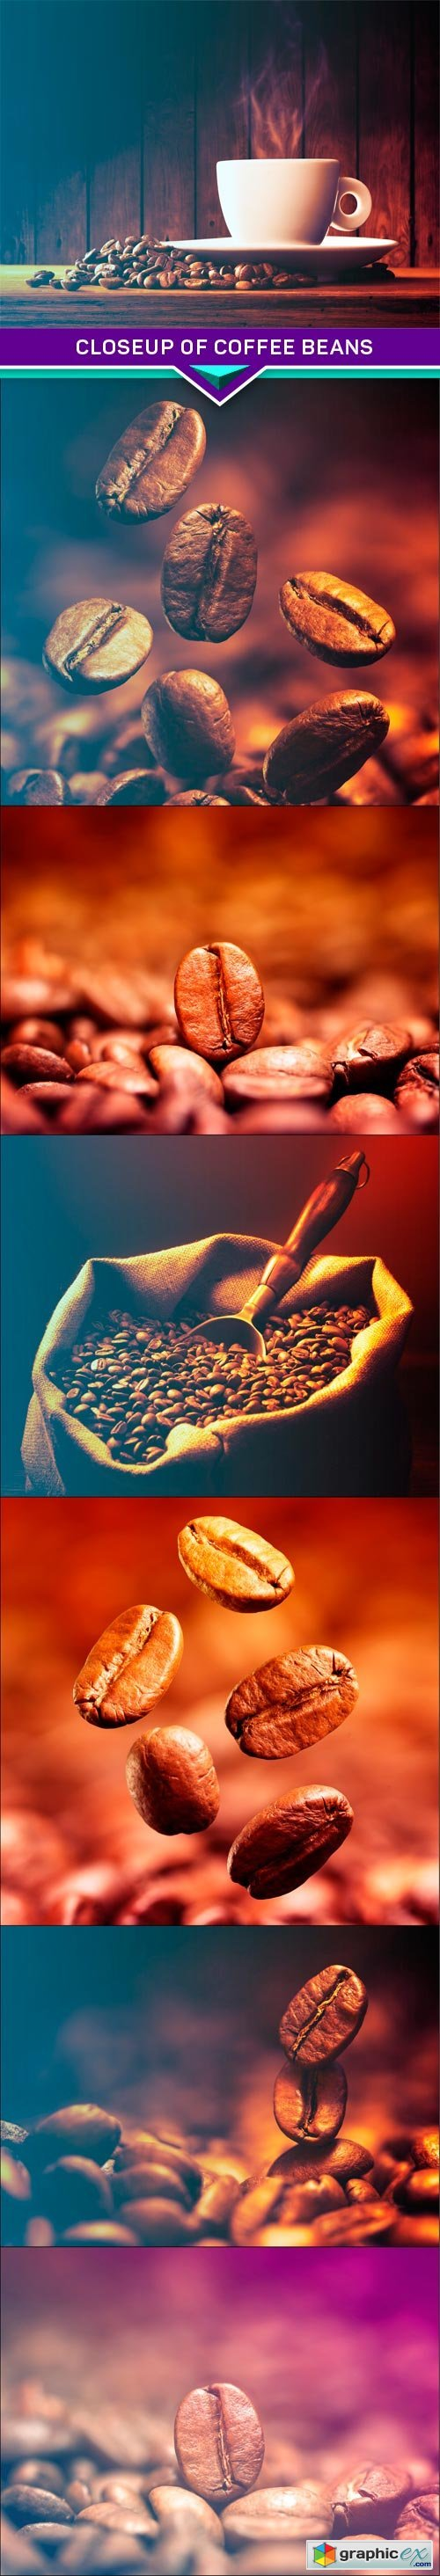 Closeup of coffee beans 7x JPEG